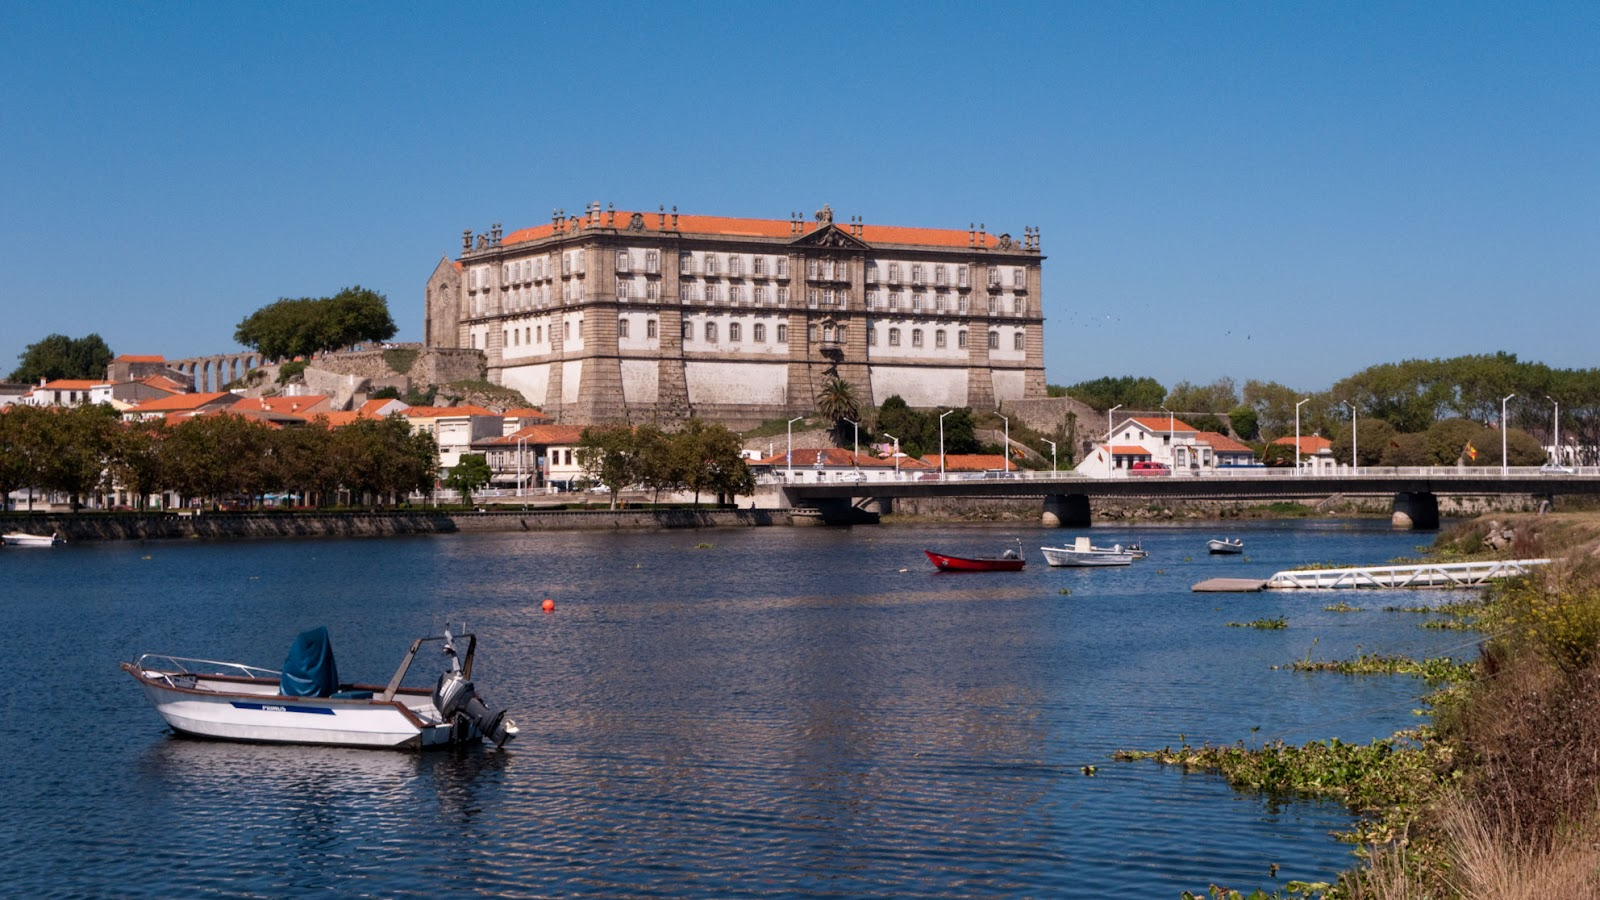 vila do conde mature personals Our tailor-made luxury villa holidays benefit from our travel experts' advice about the local area, high standards of personal service and meticulous attention.